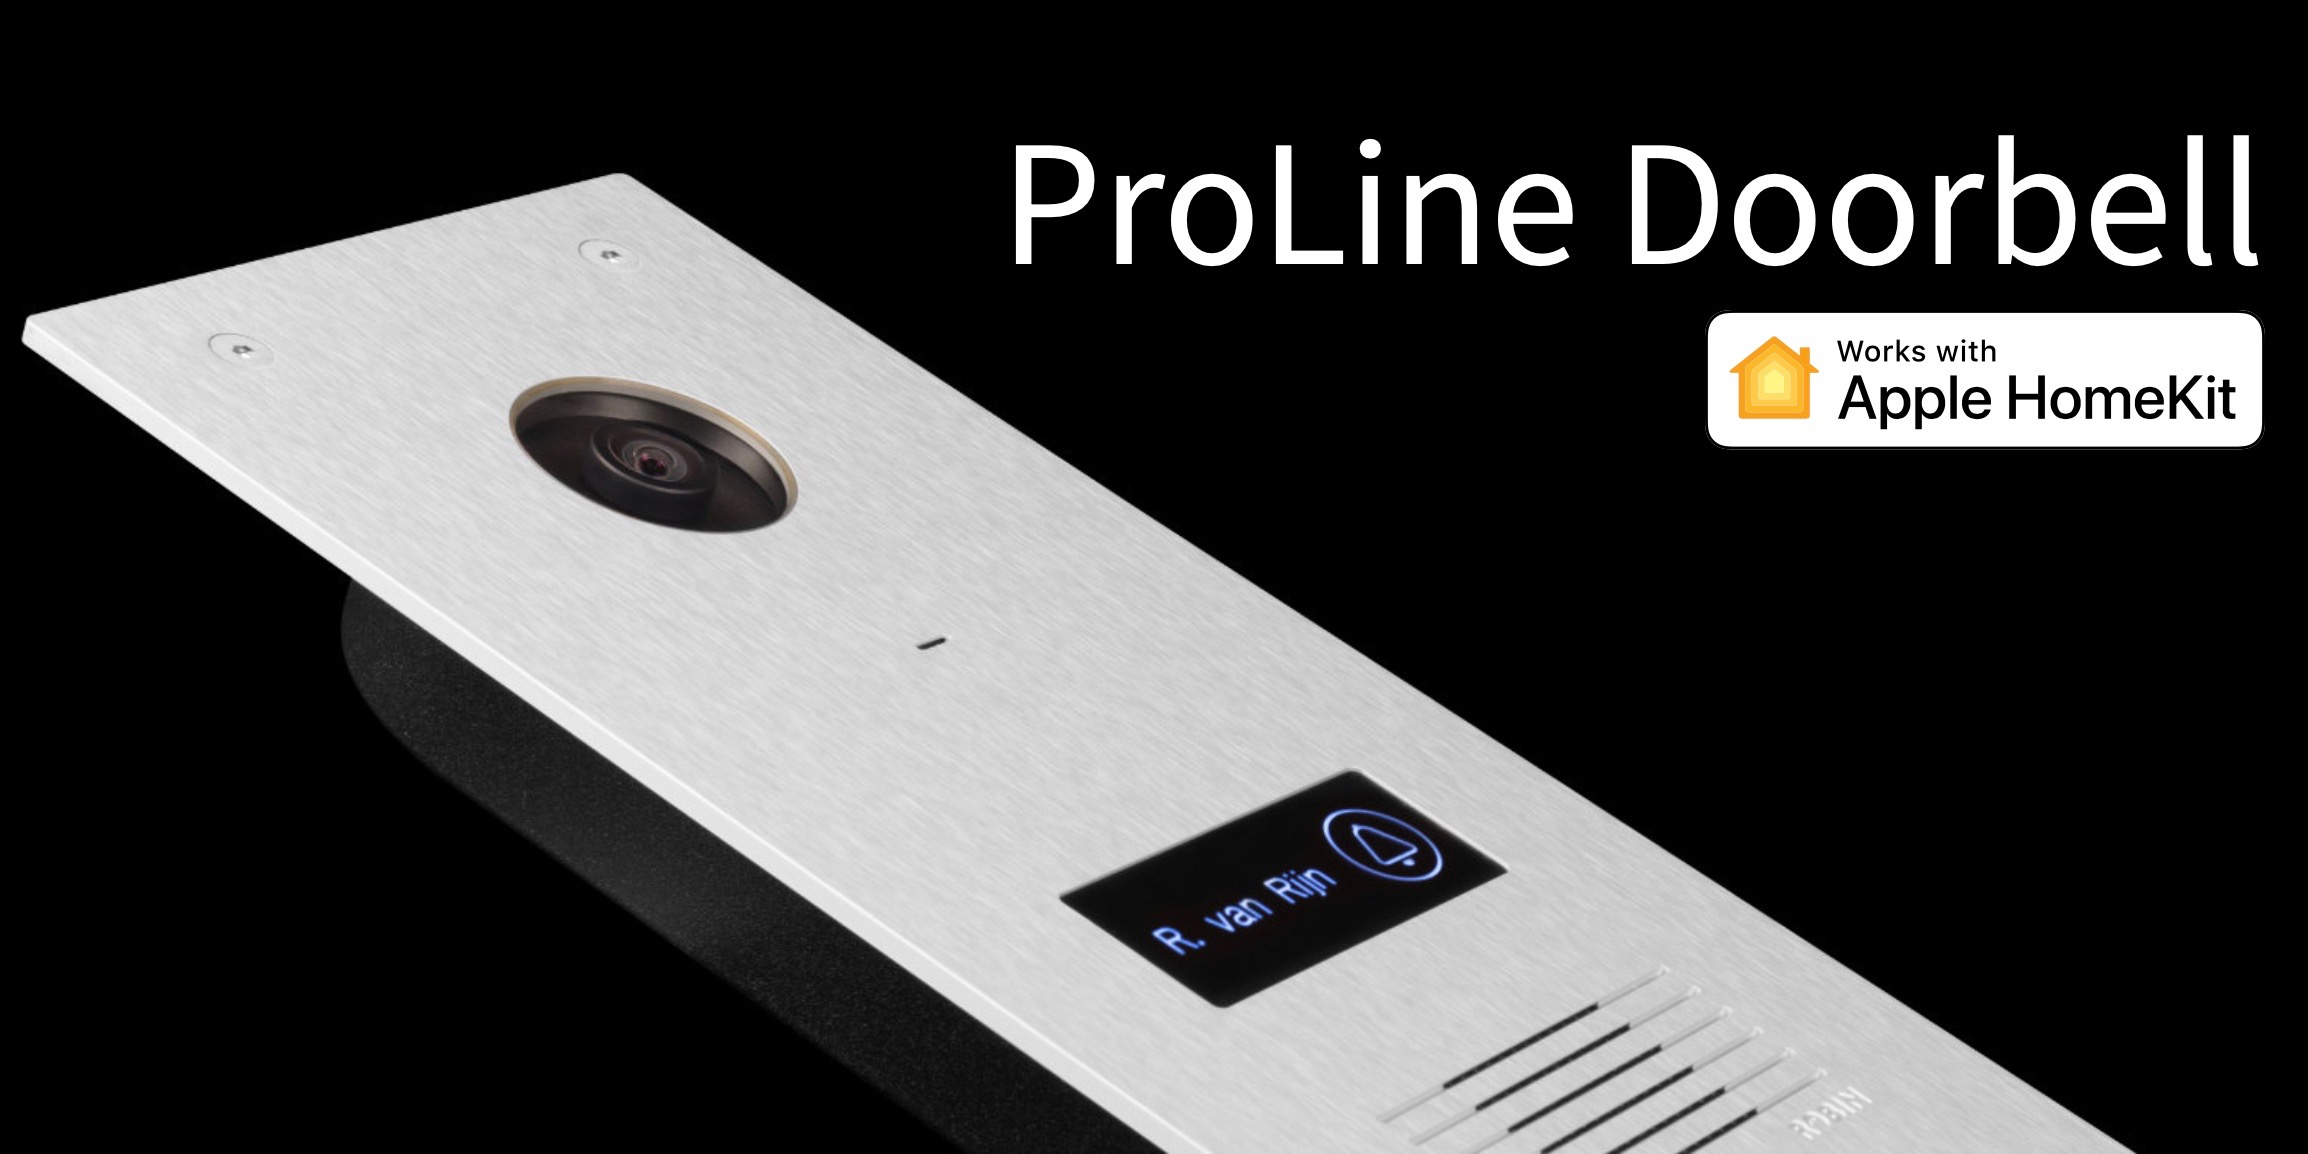 [Update: Shipping next month for $660] Robin Telecom claims to offer the first HomeKit enabled doorbell with its ProLine Doorbell